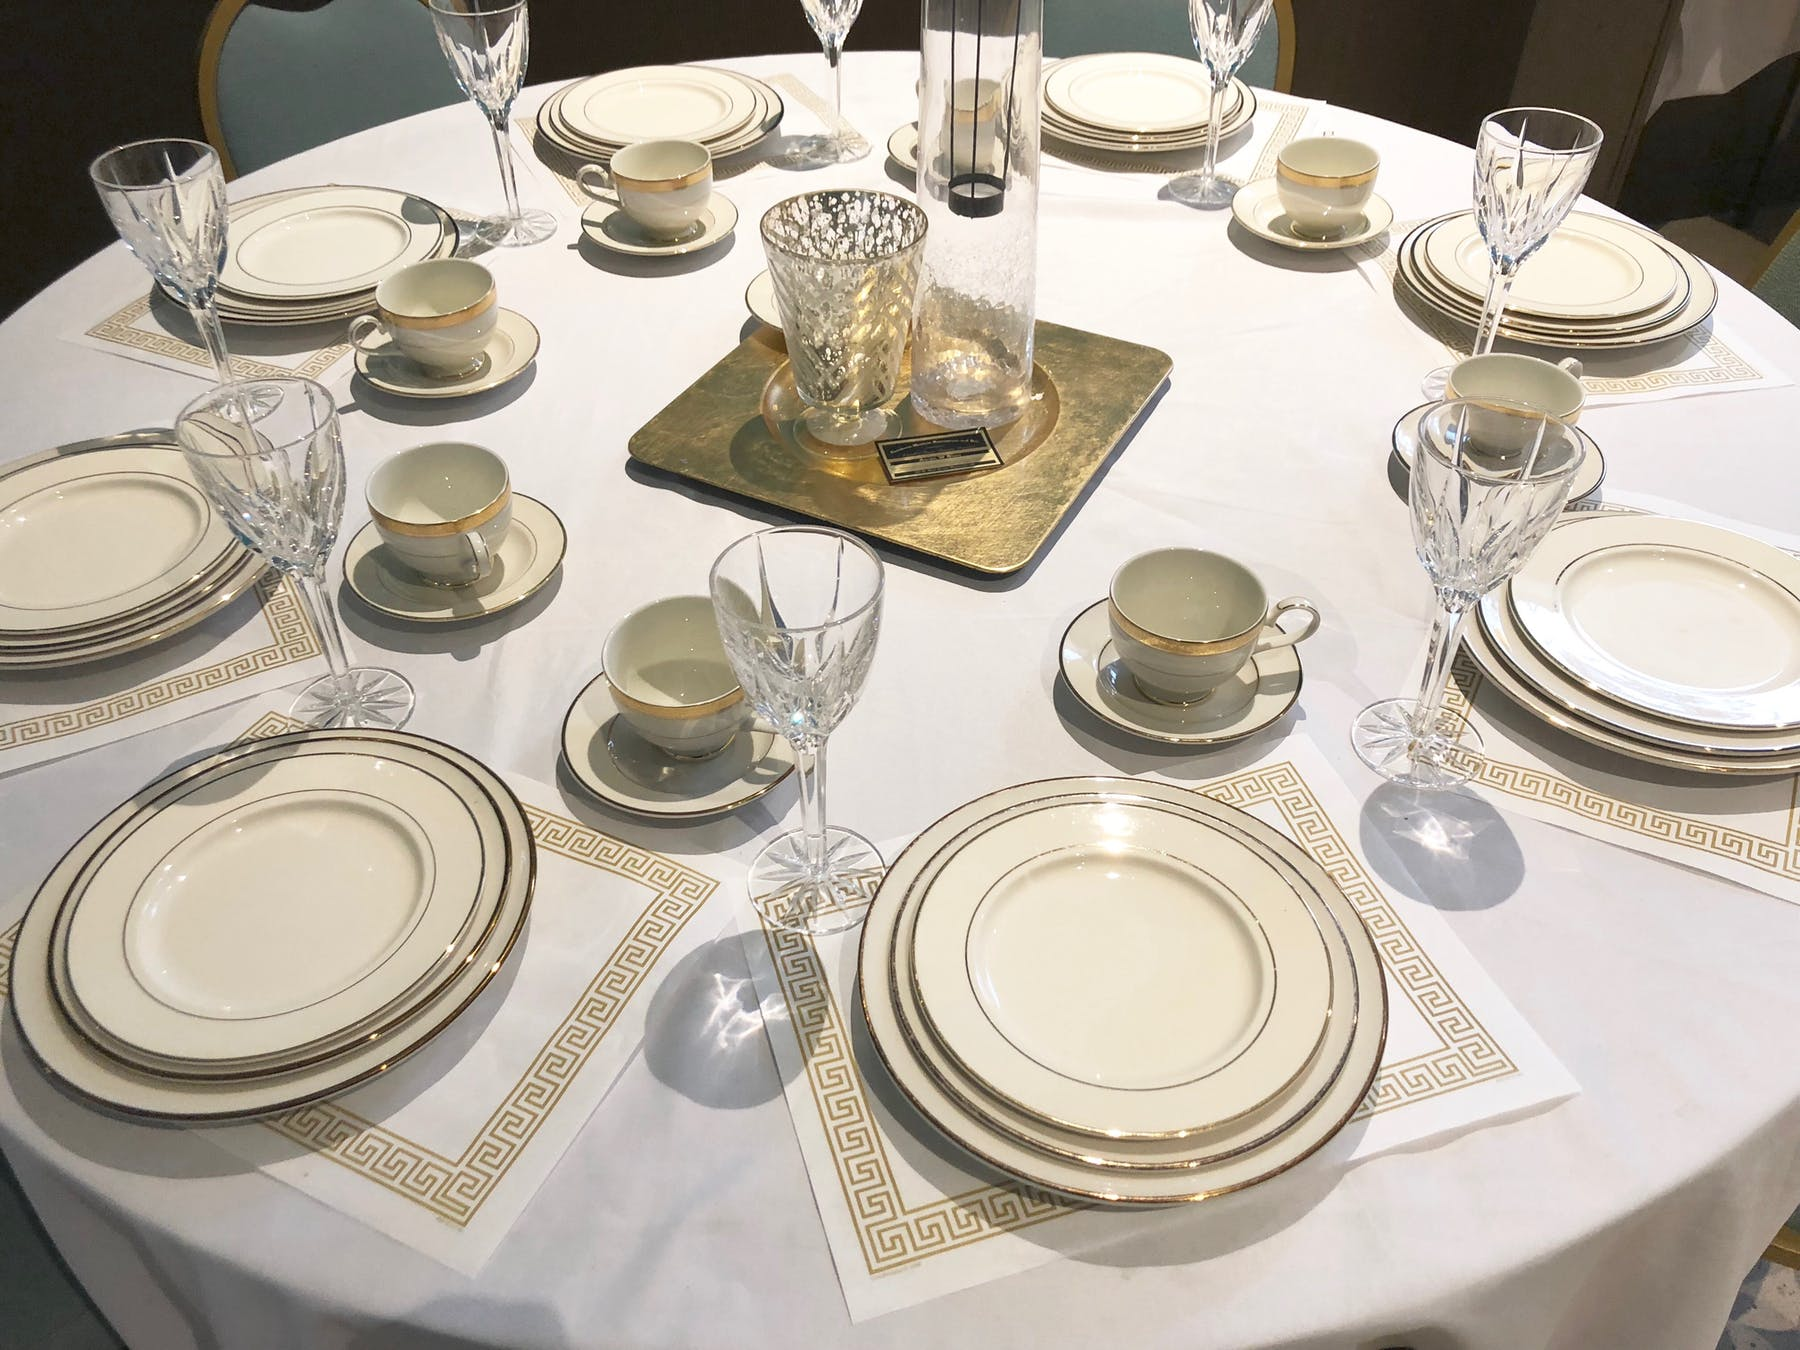 a dining table set with plates and glasses